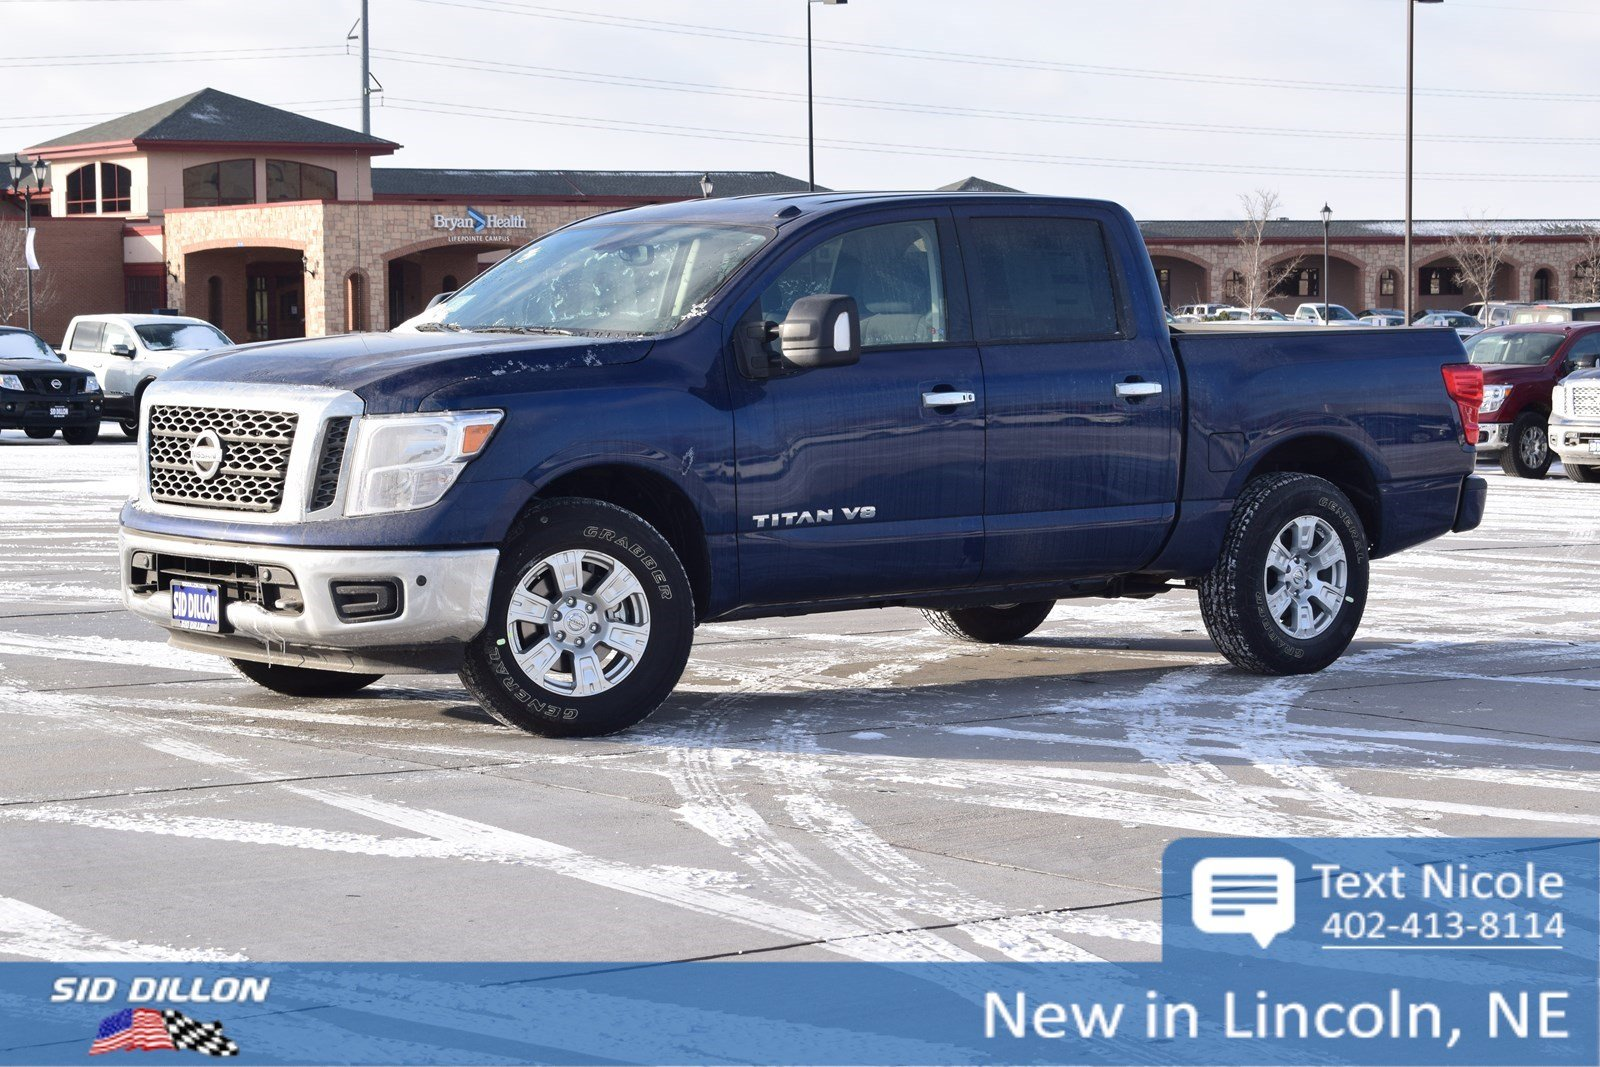 New 2018 nissan titan sv crew cab in lincoln #4n18151 sid dillon